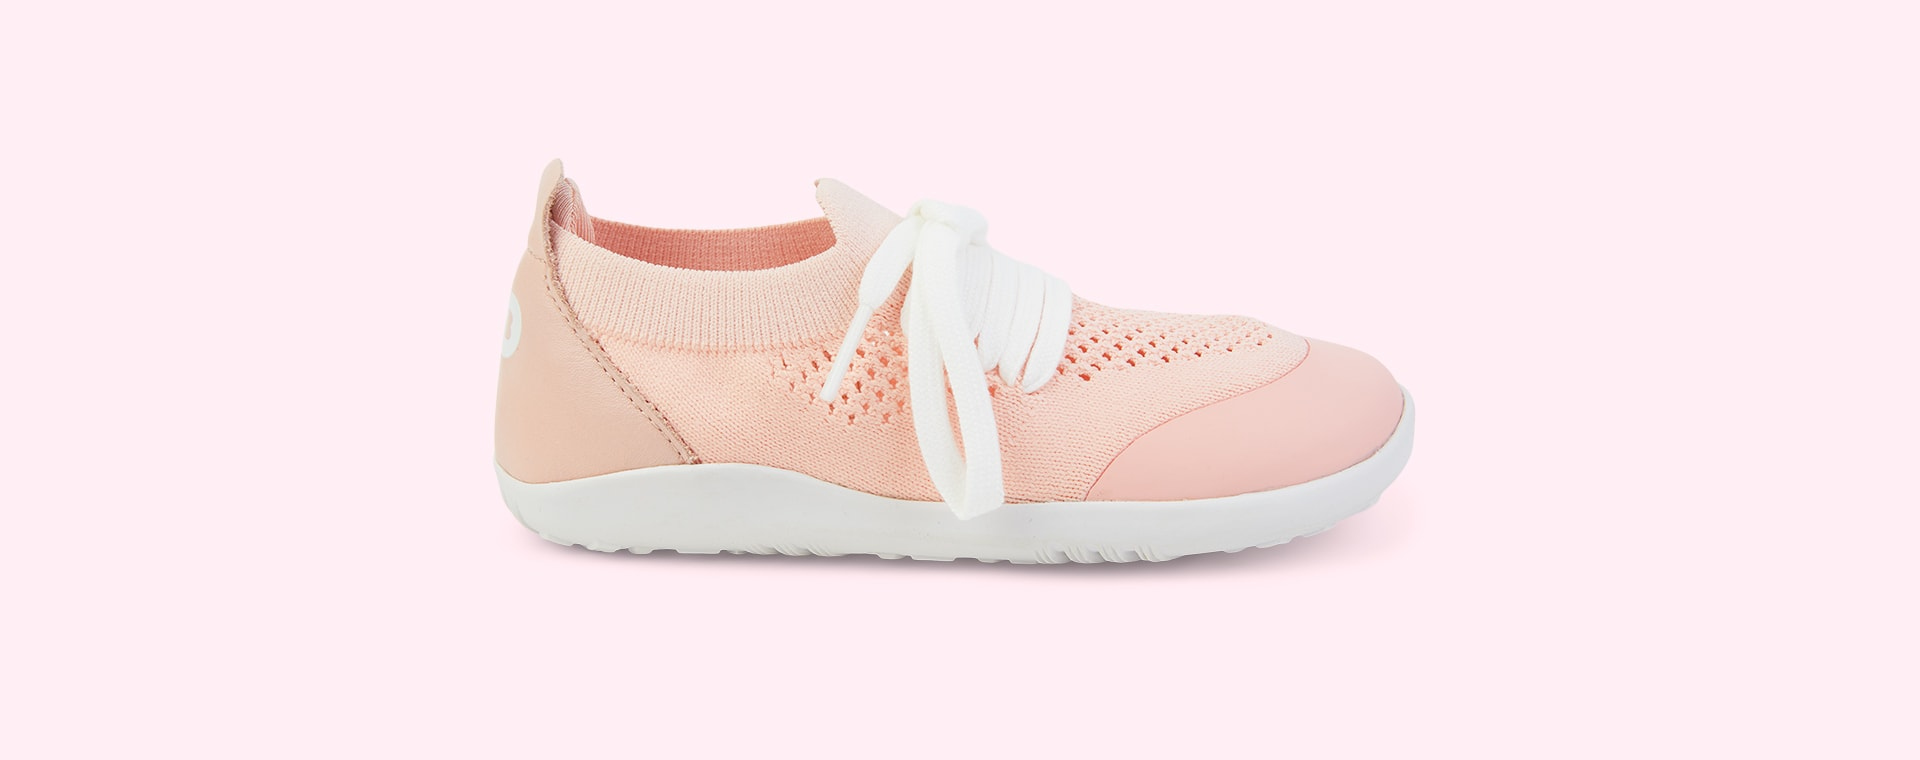 Blossom Bobux Kid + Play Knit Trainer